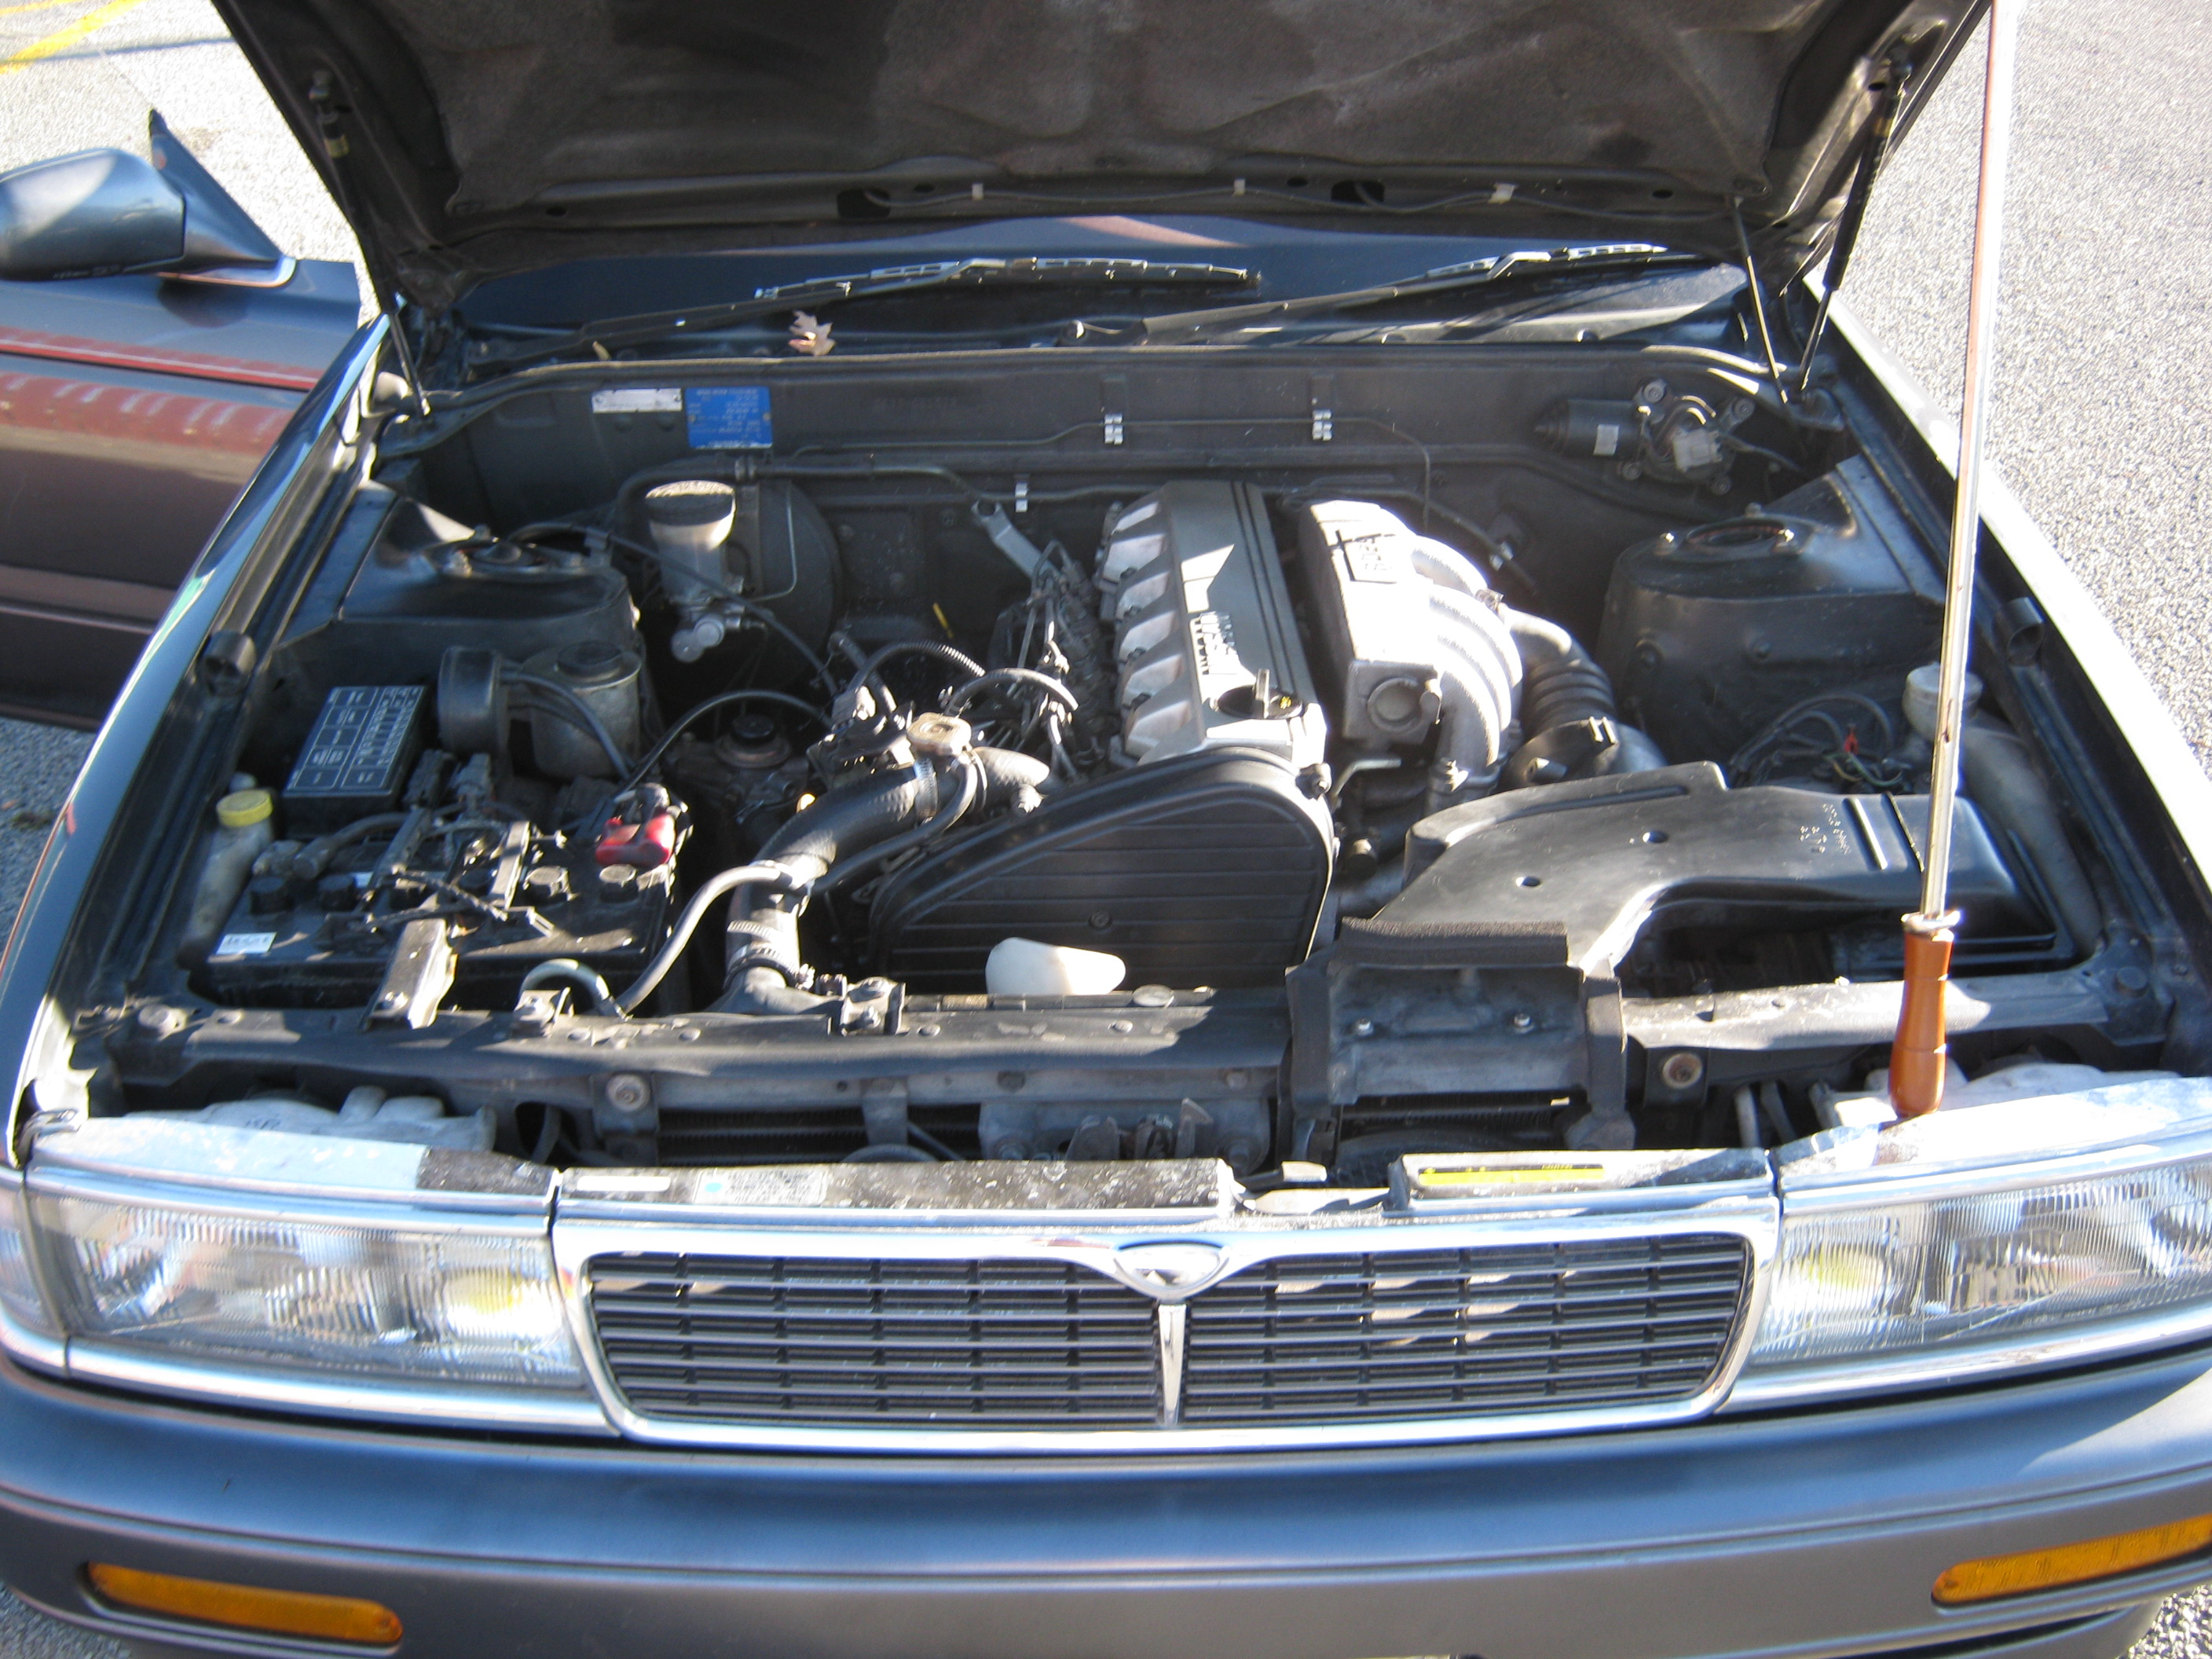 96 Xj6 Windshield Wiper Wont Work Help 29397 additionally Starion likewise 4a8bv Jaguar Xj8 Windshield Wipers Not Working Fuse Box Does Not besides 2003 Ford Mustang Gt Fuse Box likewise 2001 Toyota Camry Wiring Diagram Headlights. on fuel pump relay location 1994